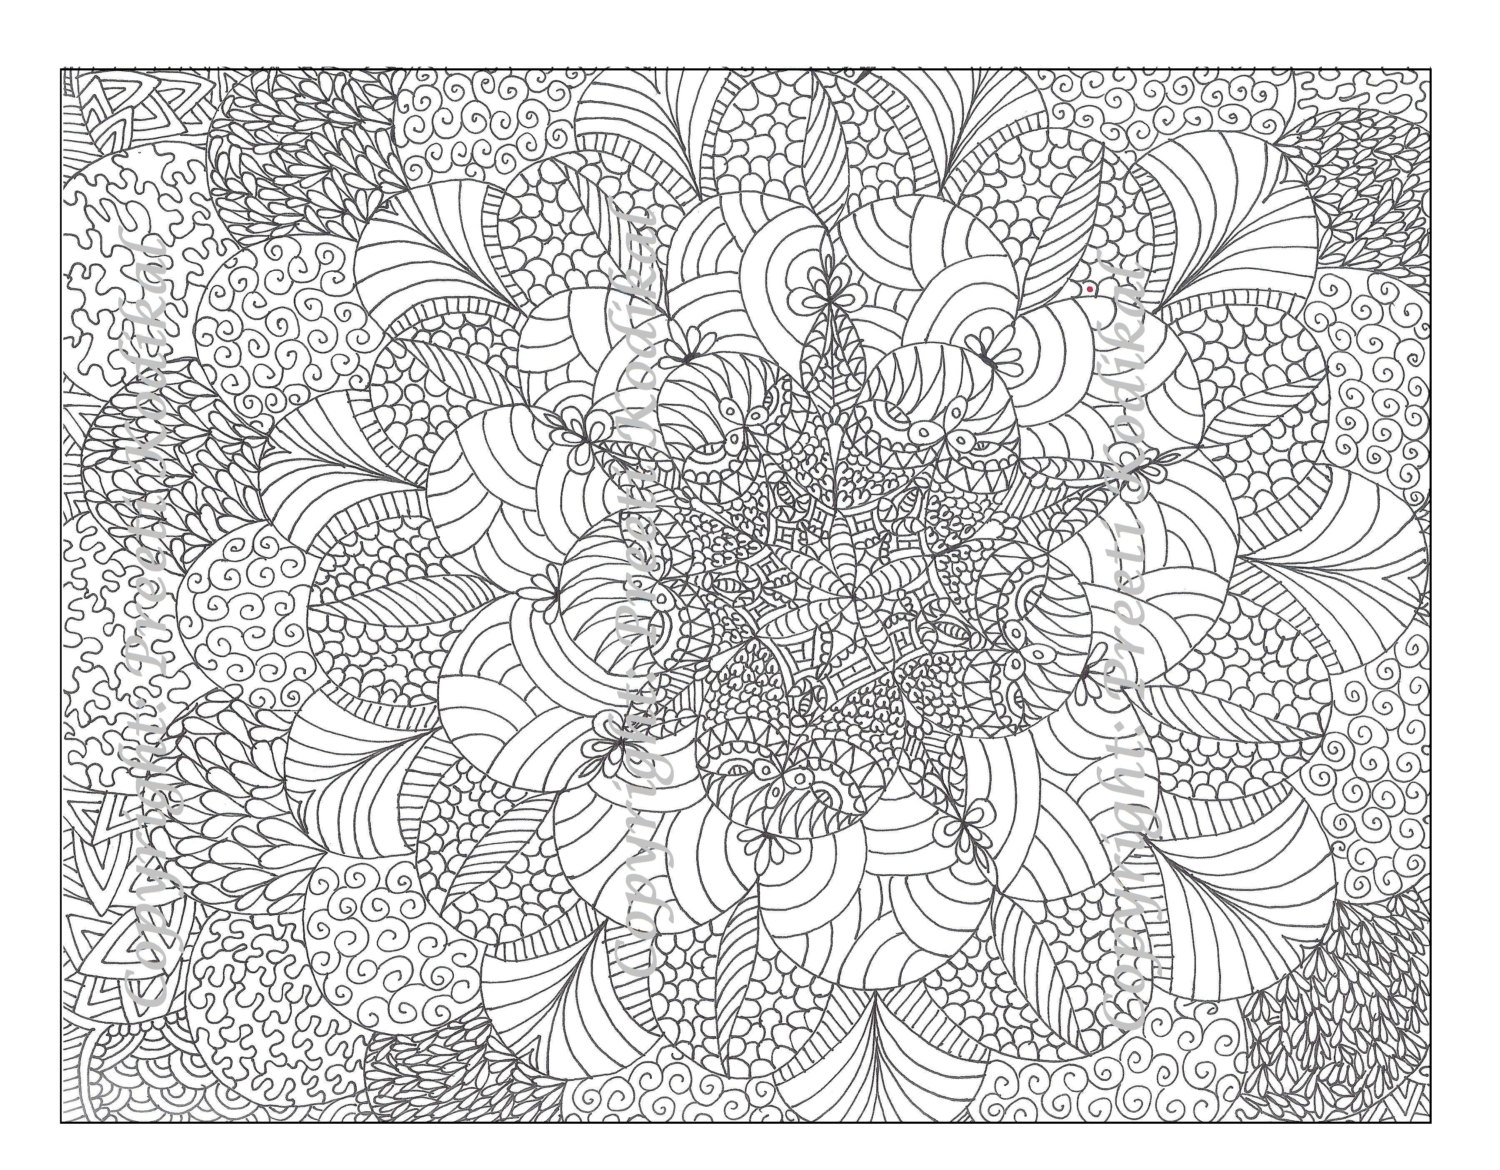 detailed coloring pages printable - Printable Abstract Coloring Pages